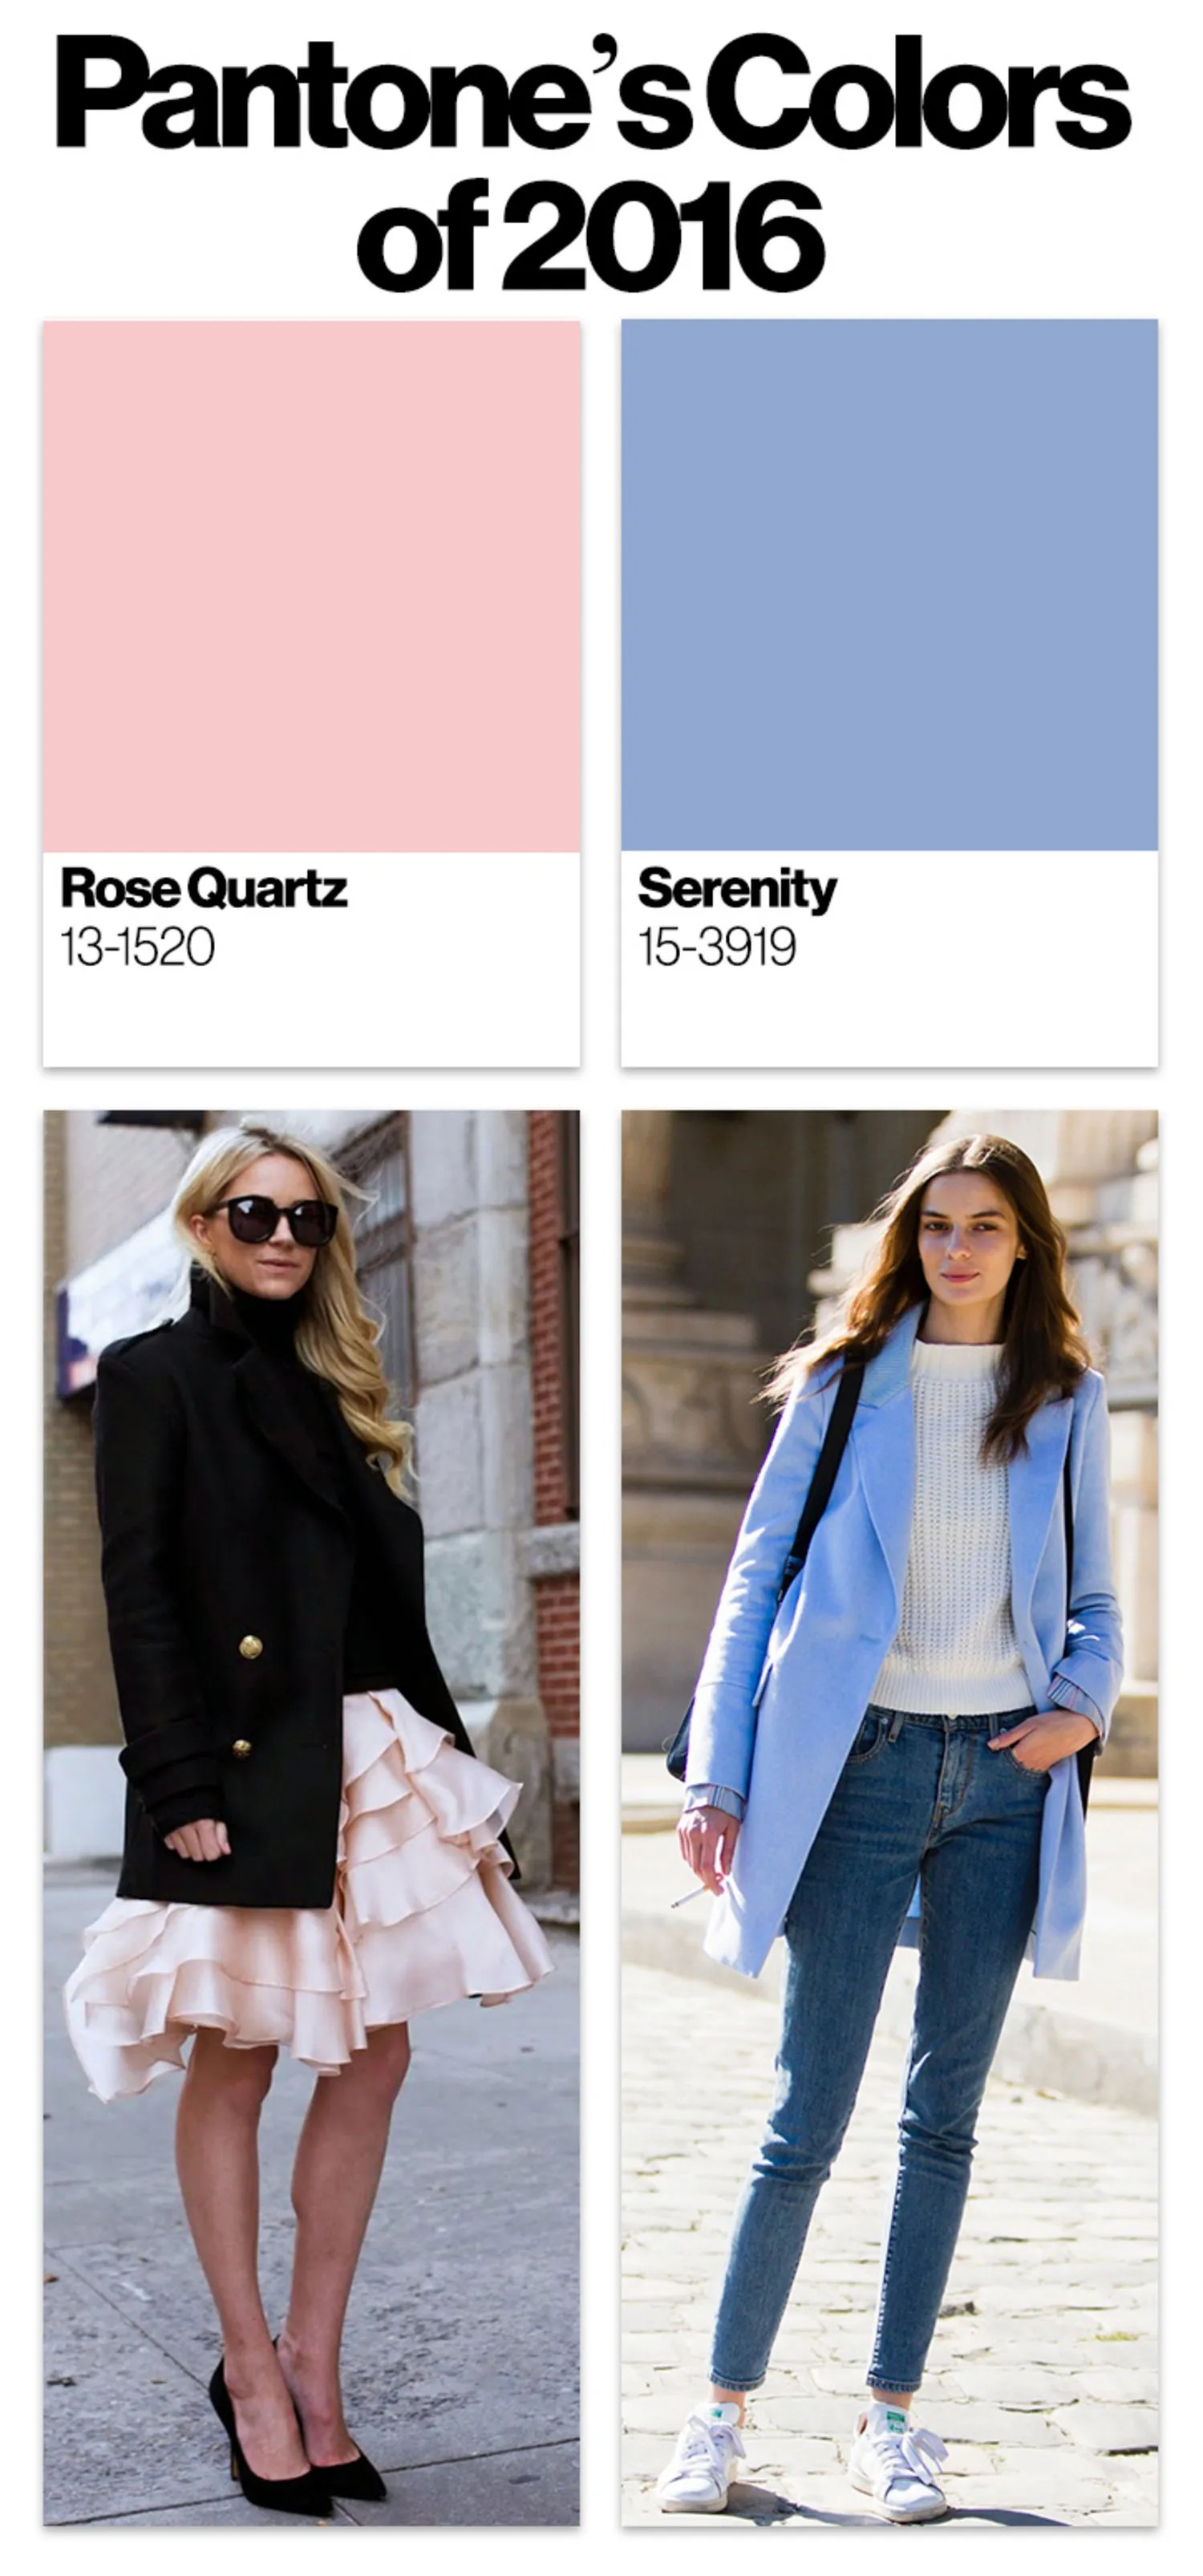 Pantone Color 2016 Outfits Using The Pantone Colors Of 2016 Serenity And Rose Quartz